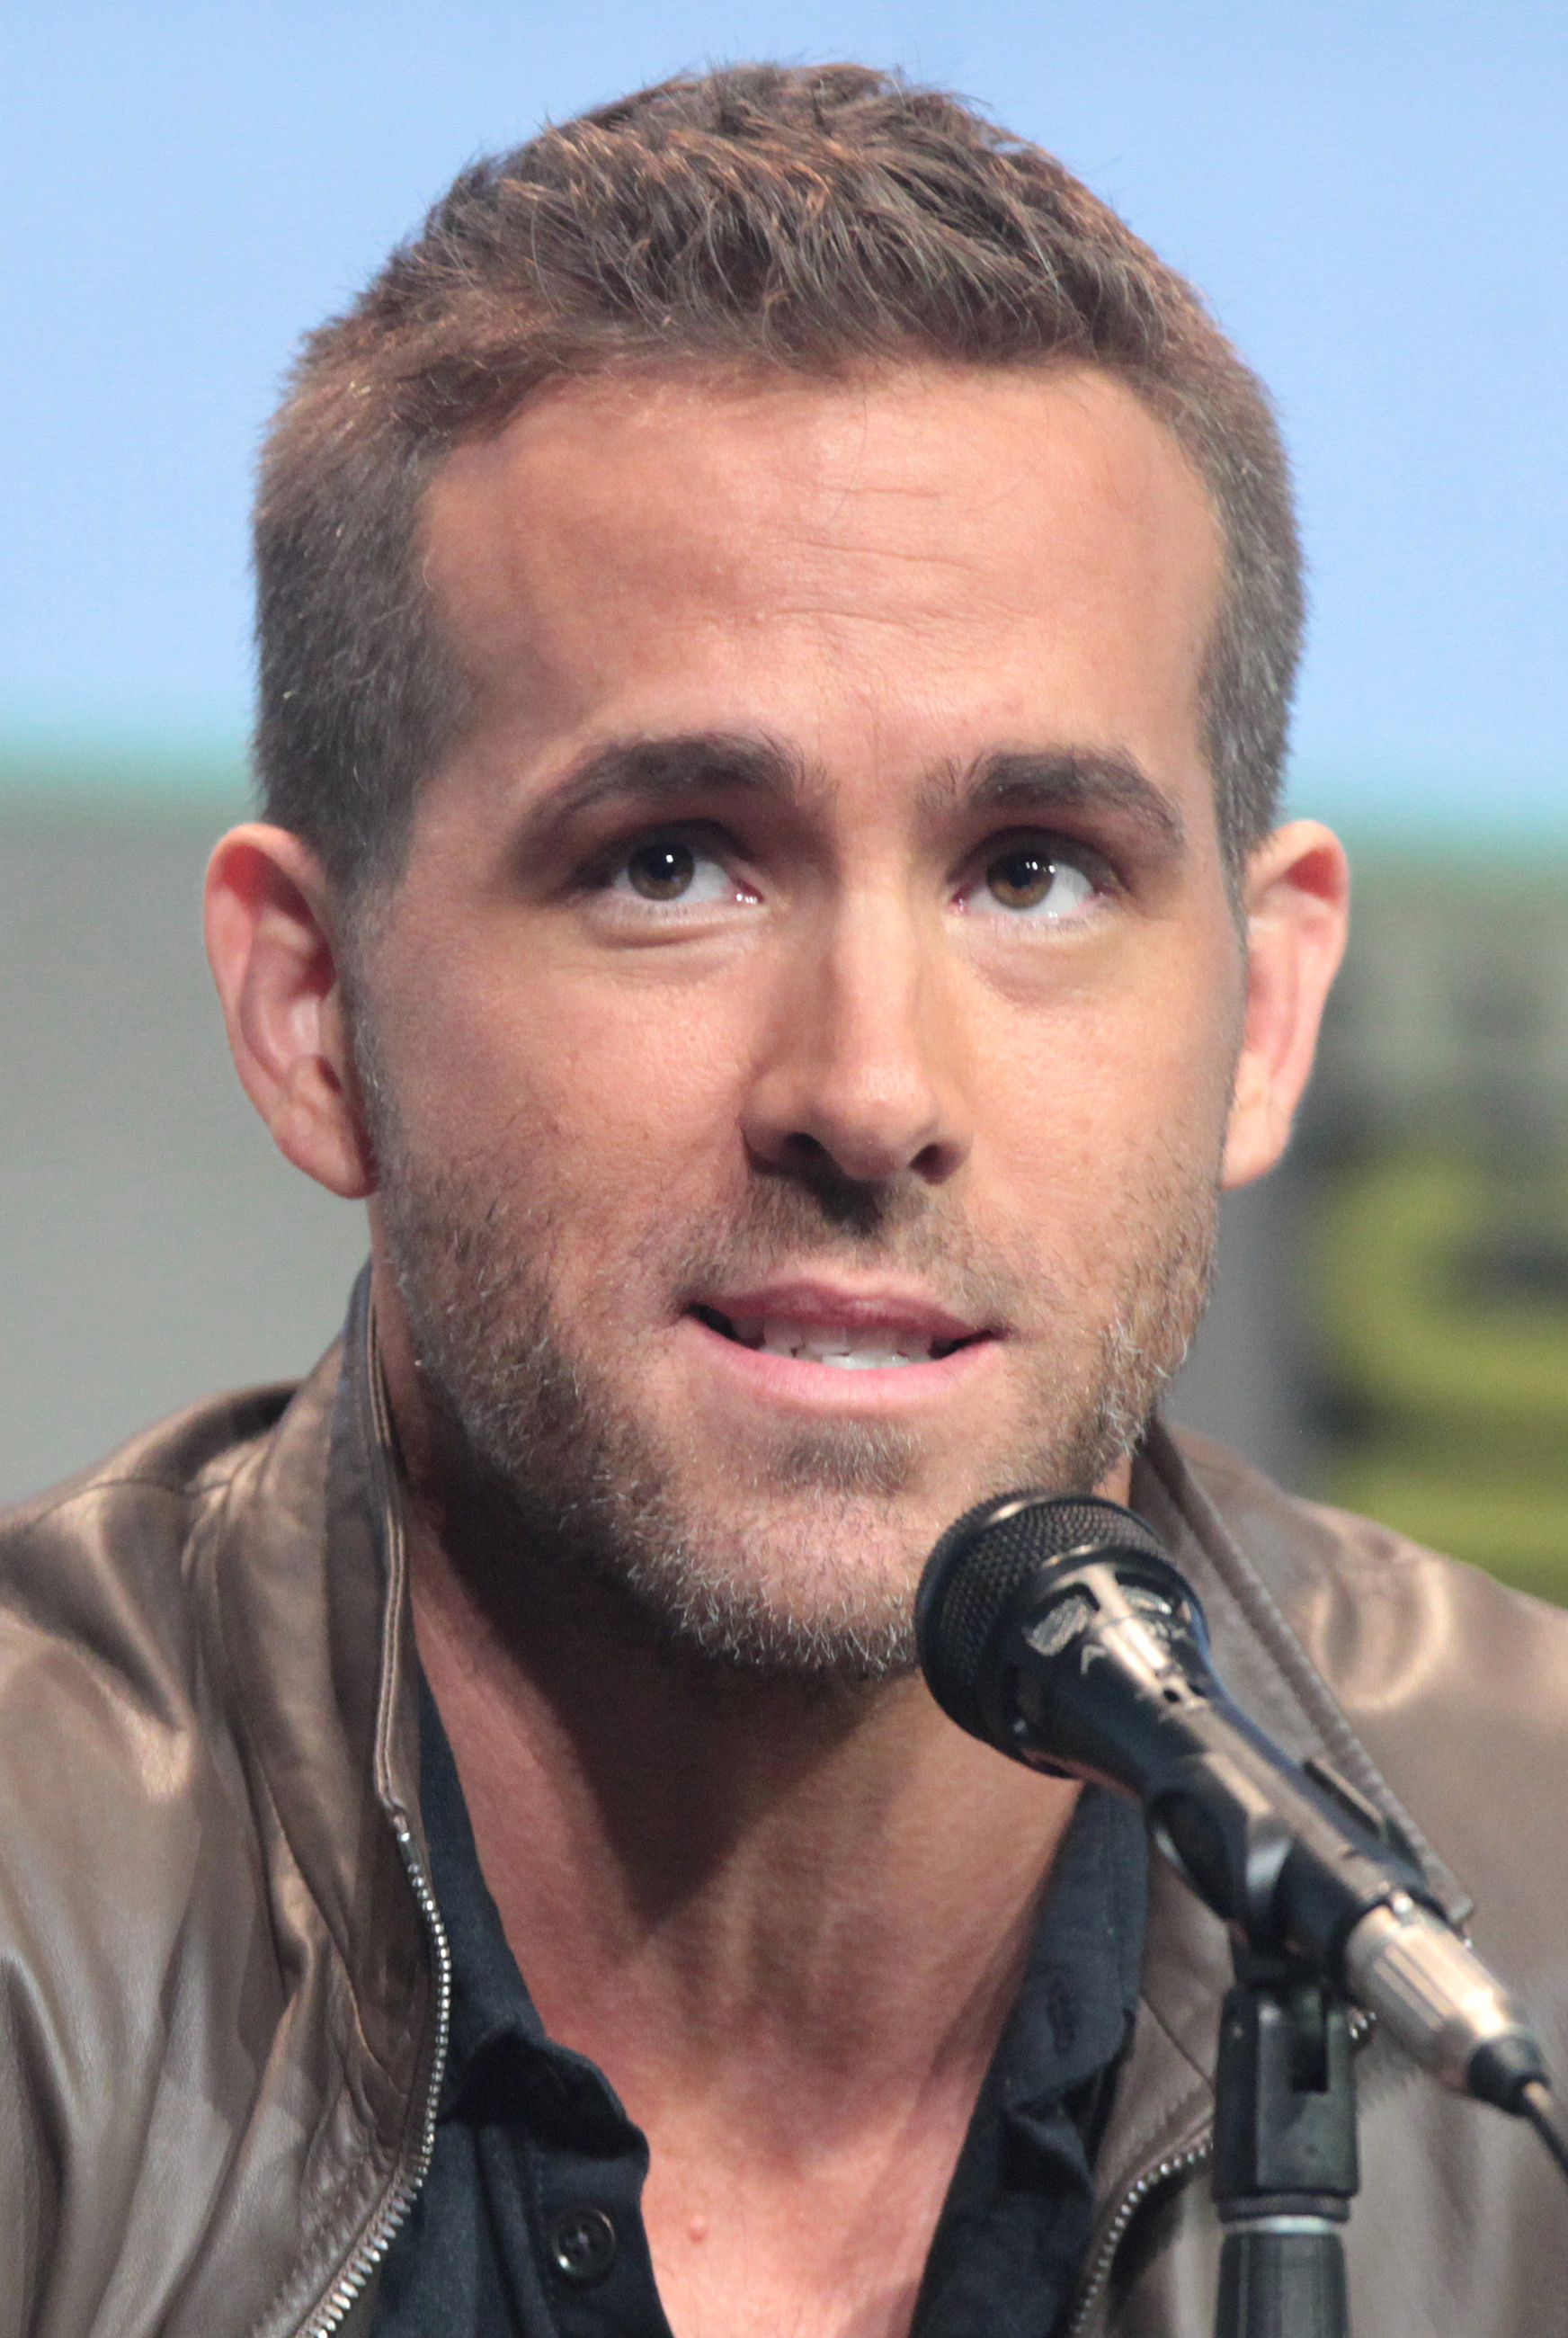 Communication on this topic: Danielle Schneider, ryan-reynolds/